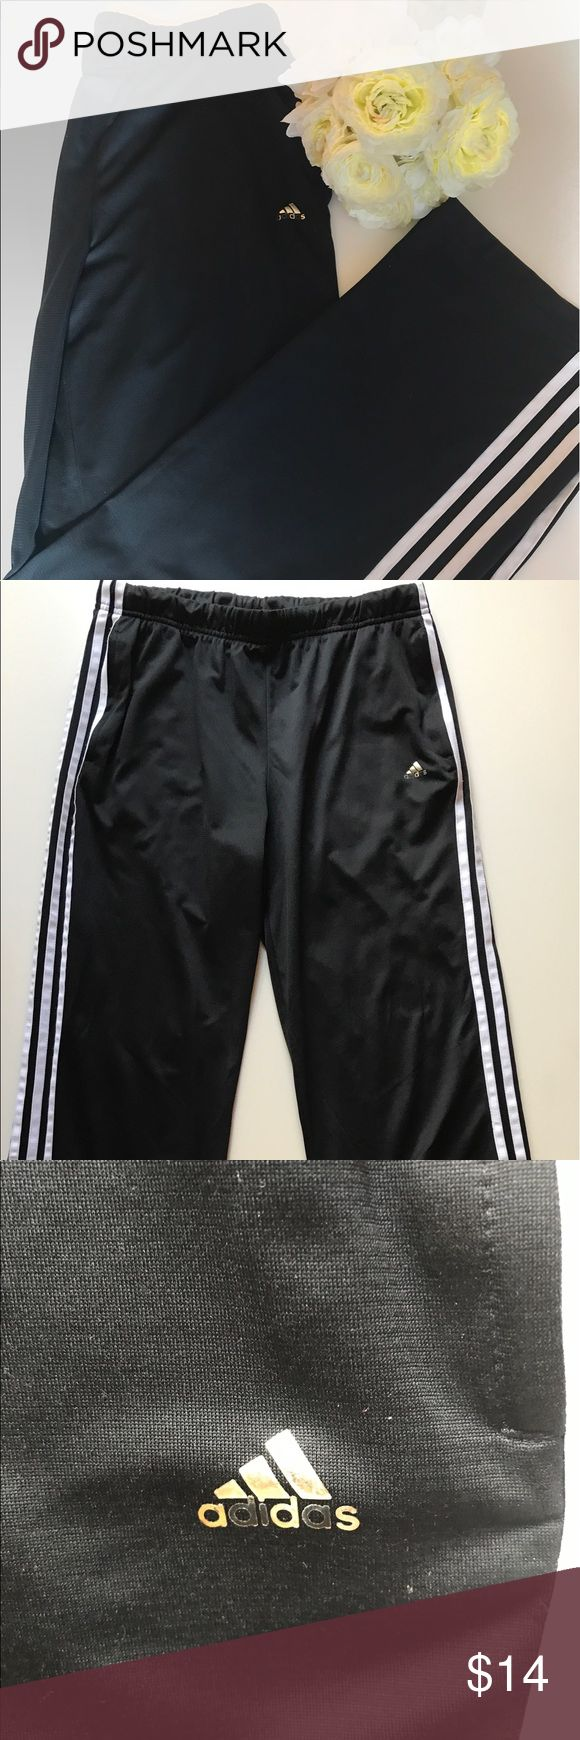 Adidas Sport Women's Training Pants Good conditions! No rips, no stains, clean! A classic Adidas Pants! Black with white stripes adidas Pants Track Pants & Joggers